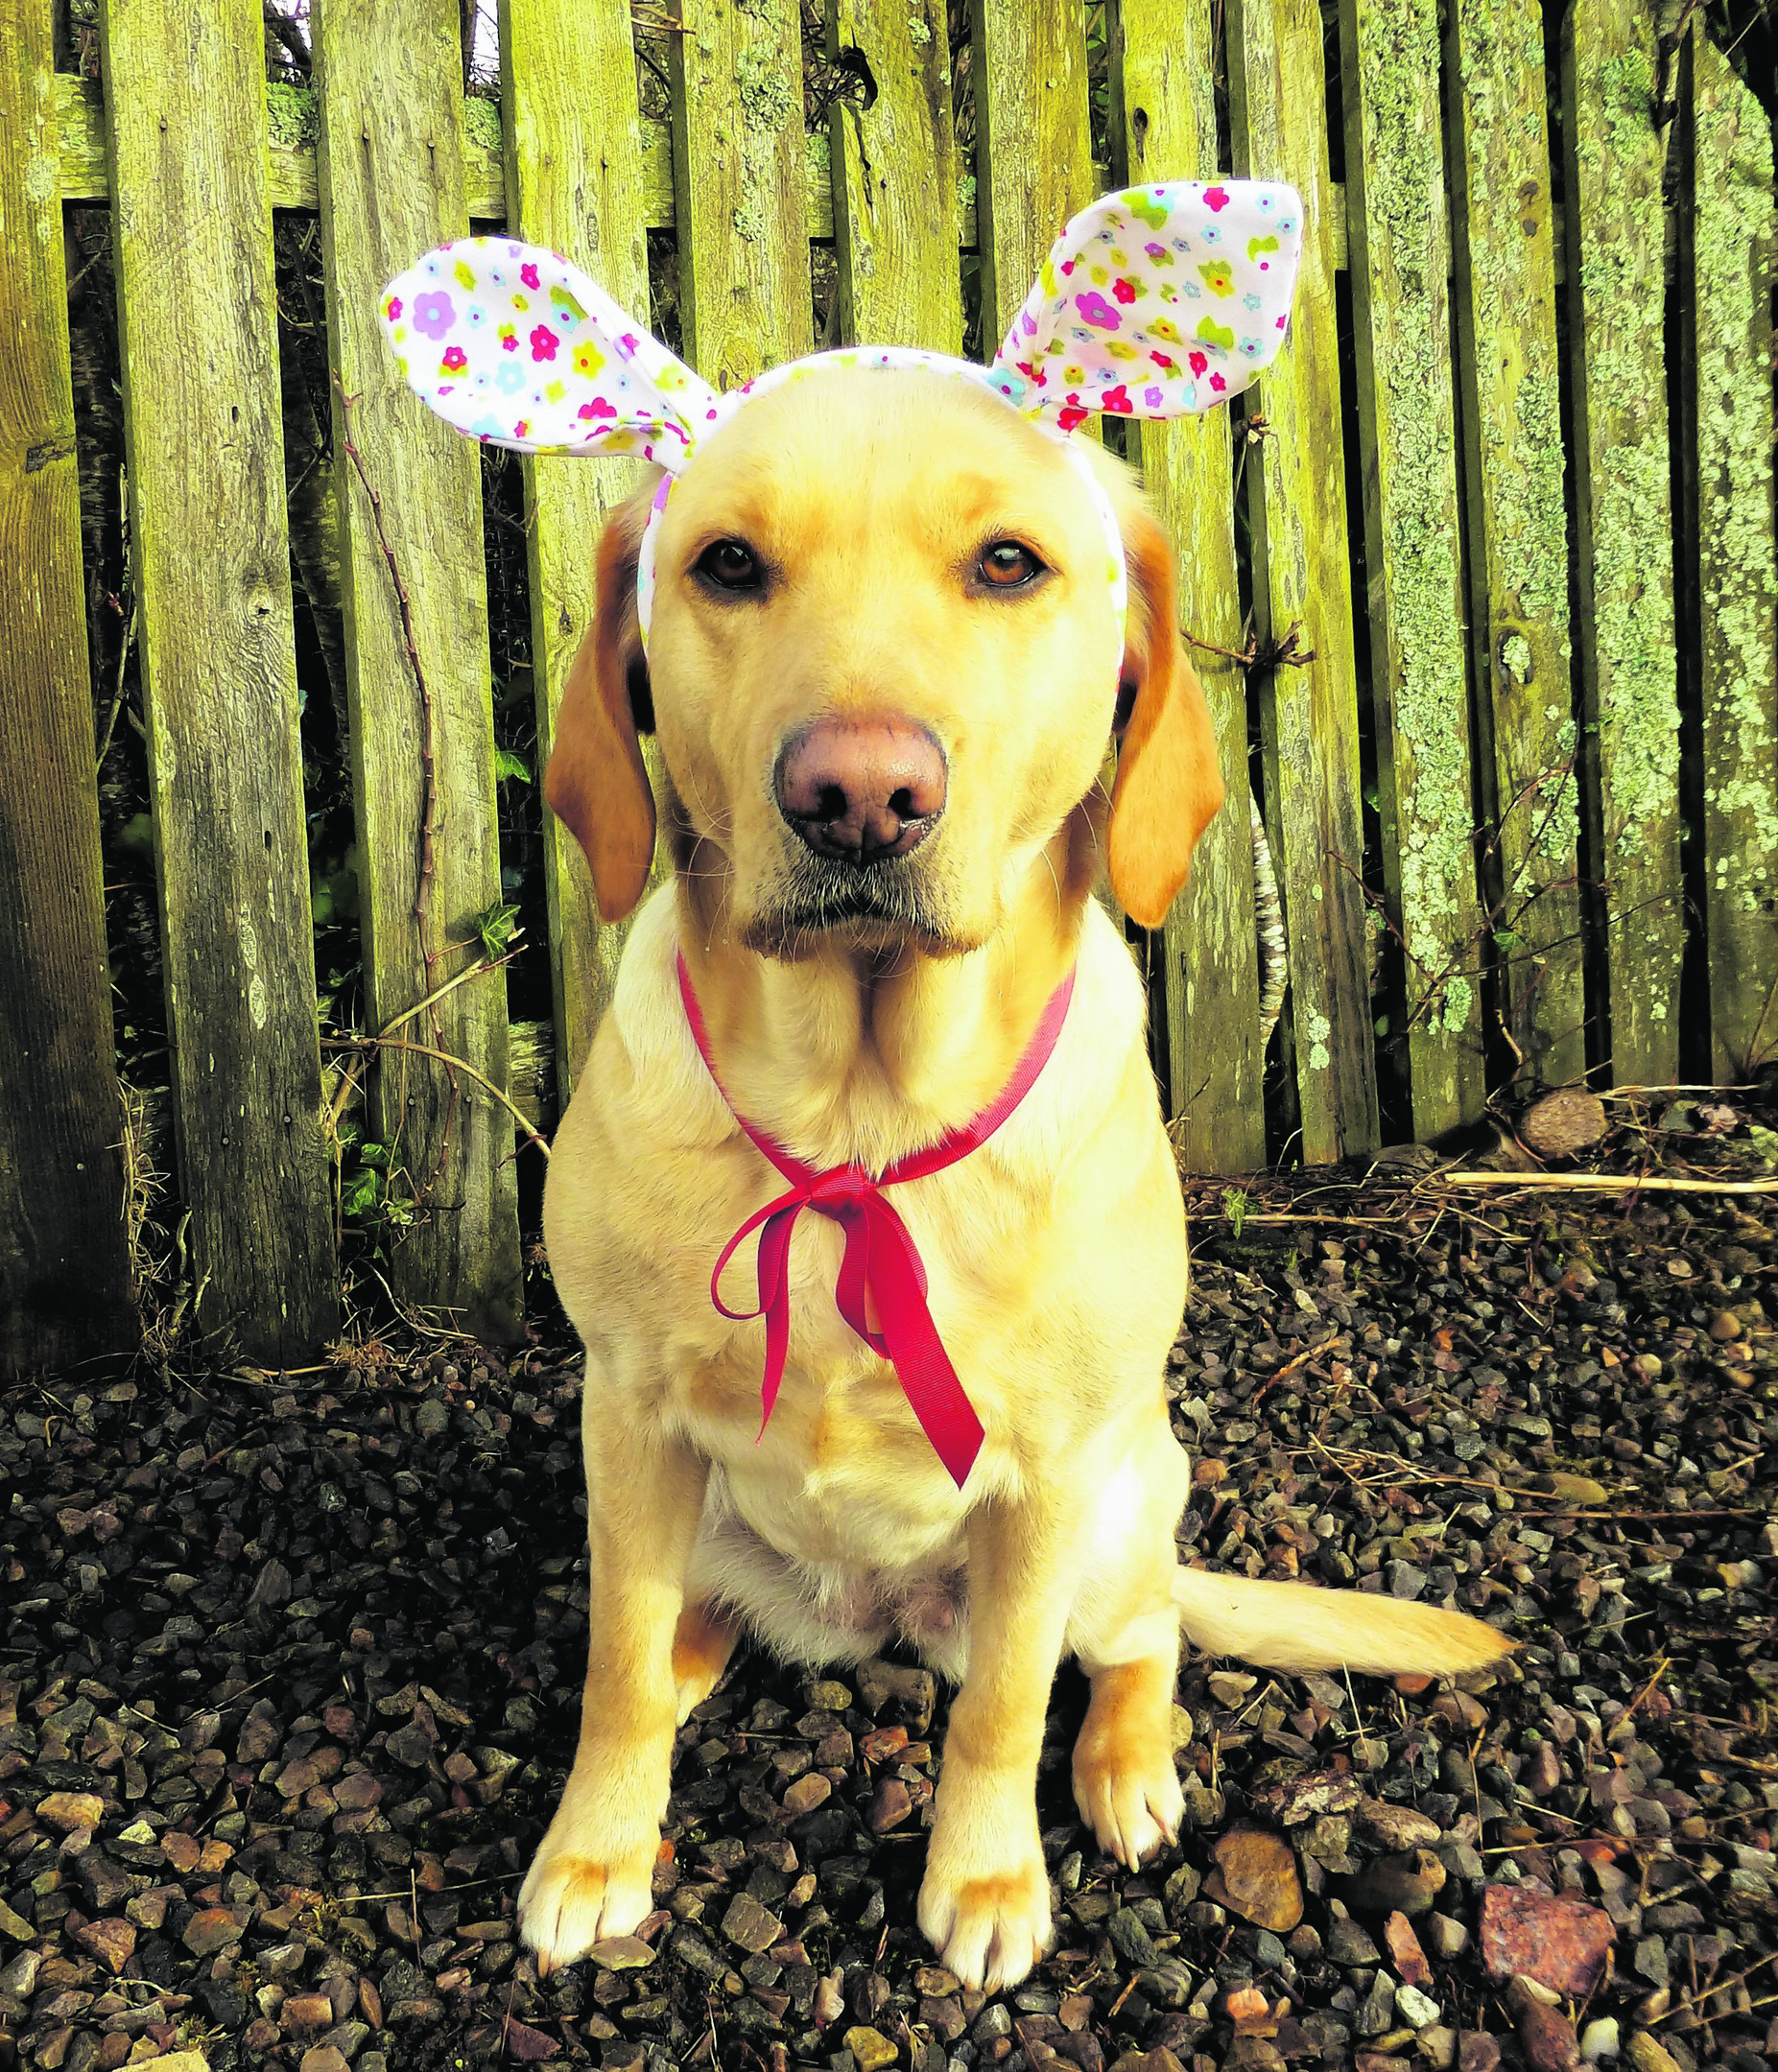 This is Sunny, all ready for Easter. She lives with Lisa Wood in Nairn.